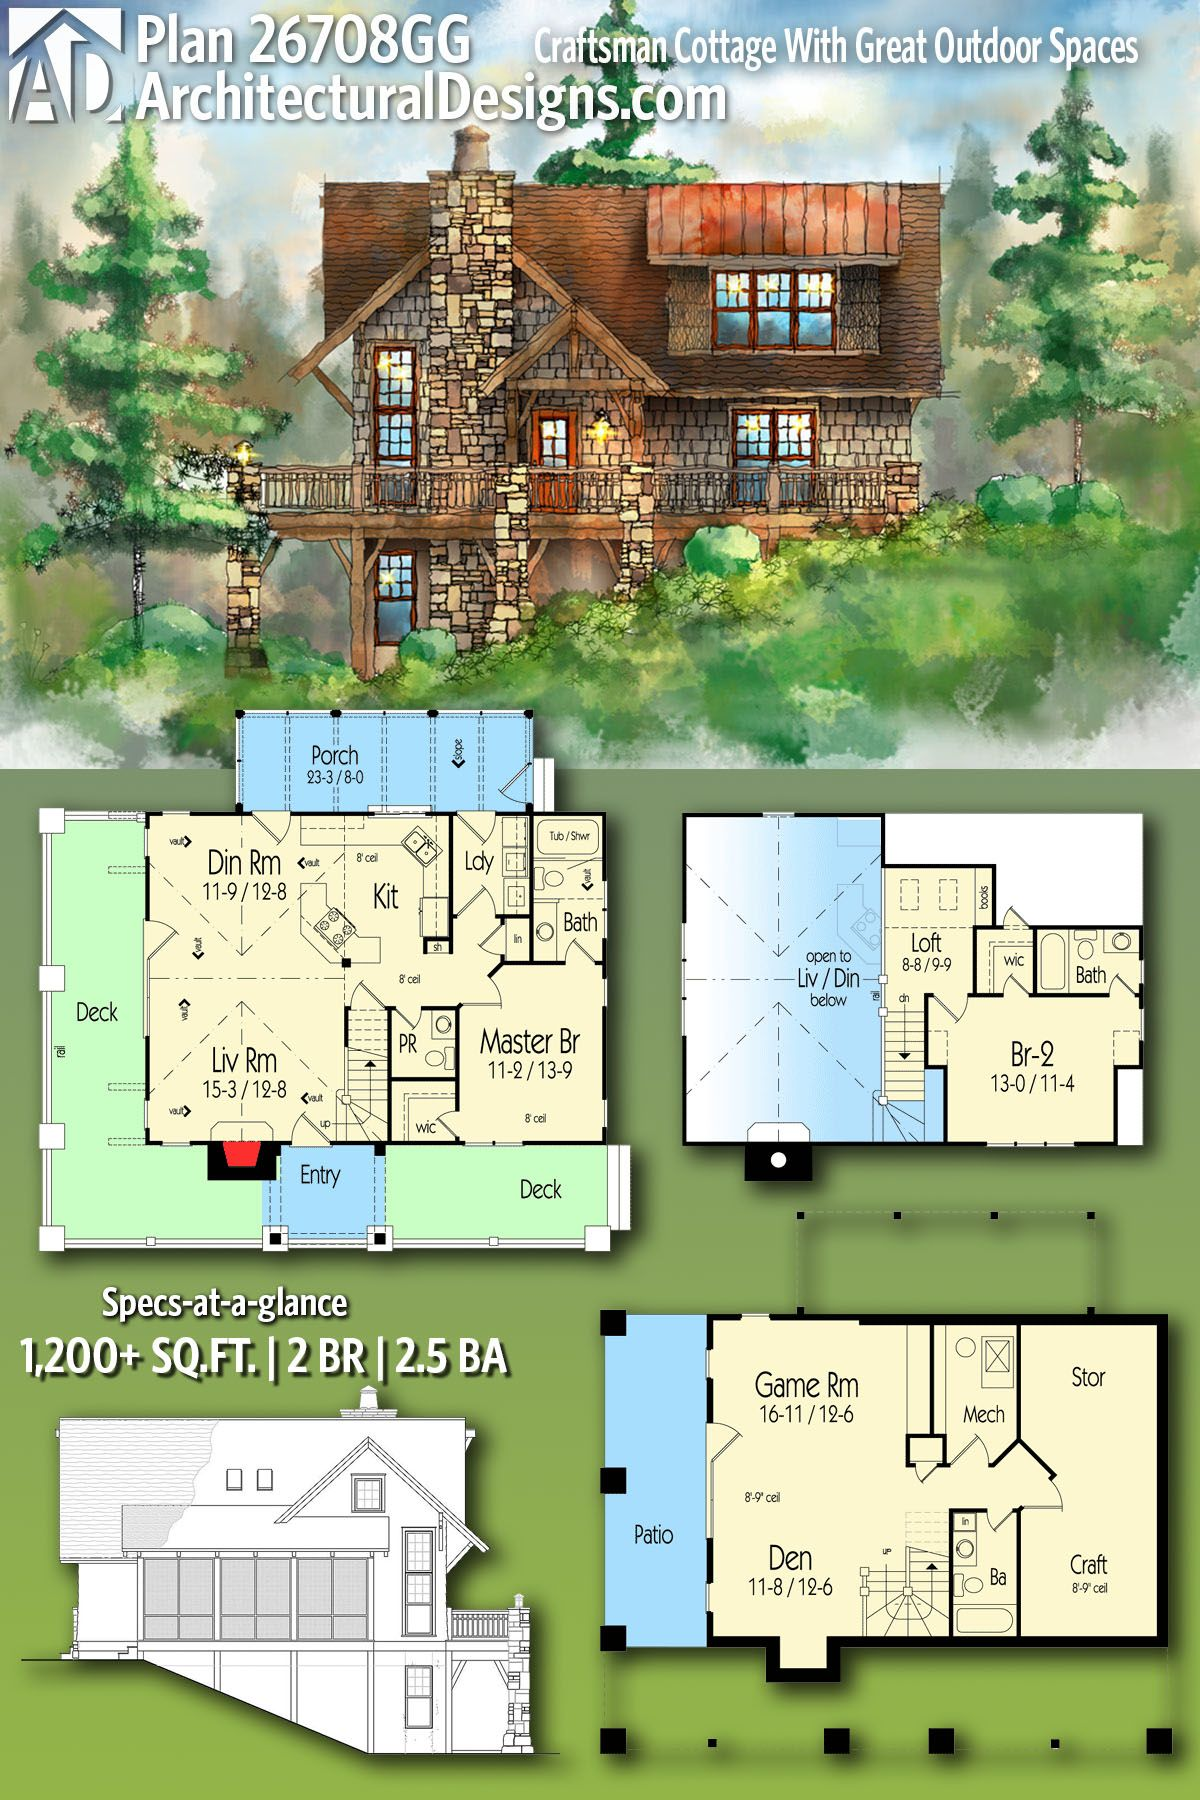 Plan 26708gg Craftsman Cottage With Great Outdoor Spaces Architectural Design House Plans Rustic House Plans Timber Frame Home Plans